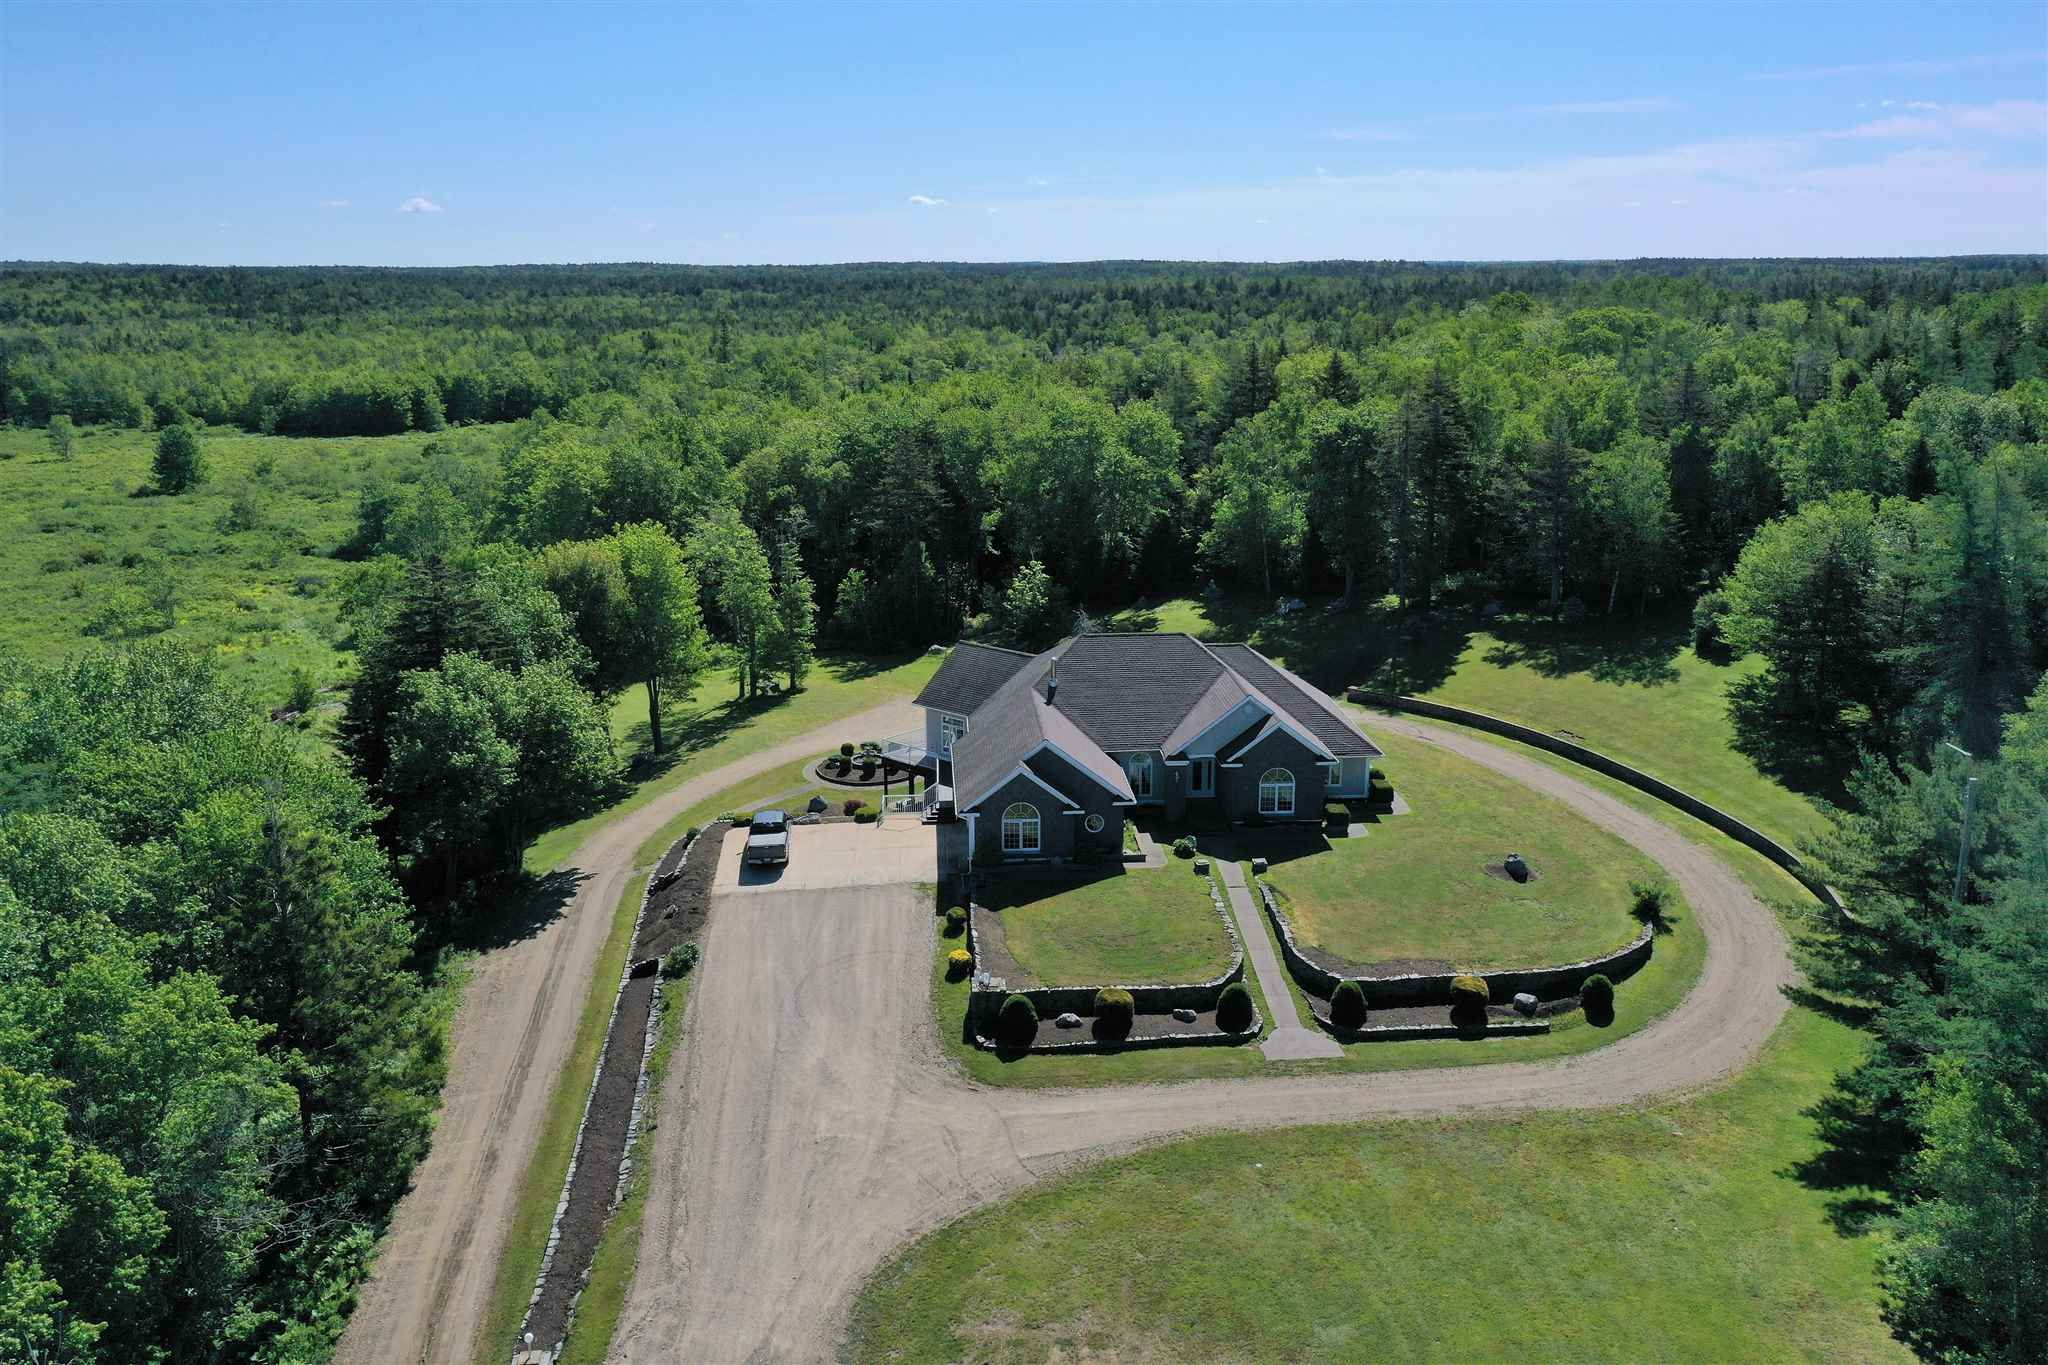 Main Photo: 5602 HIGHWAY 340 in Hassett: 401-Digby County Residential for sale (Annapolis Valley)  : MLS®# 202115522